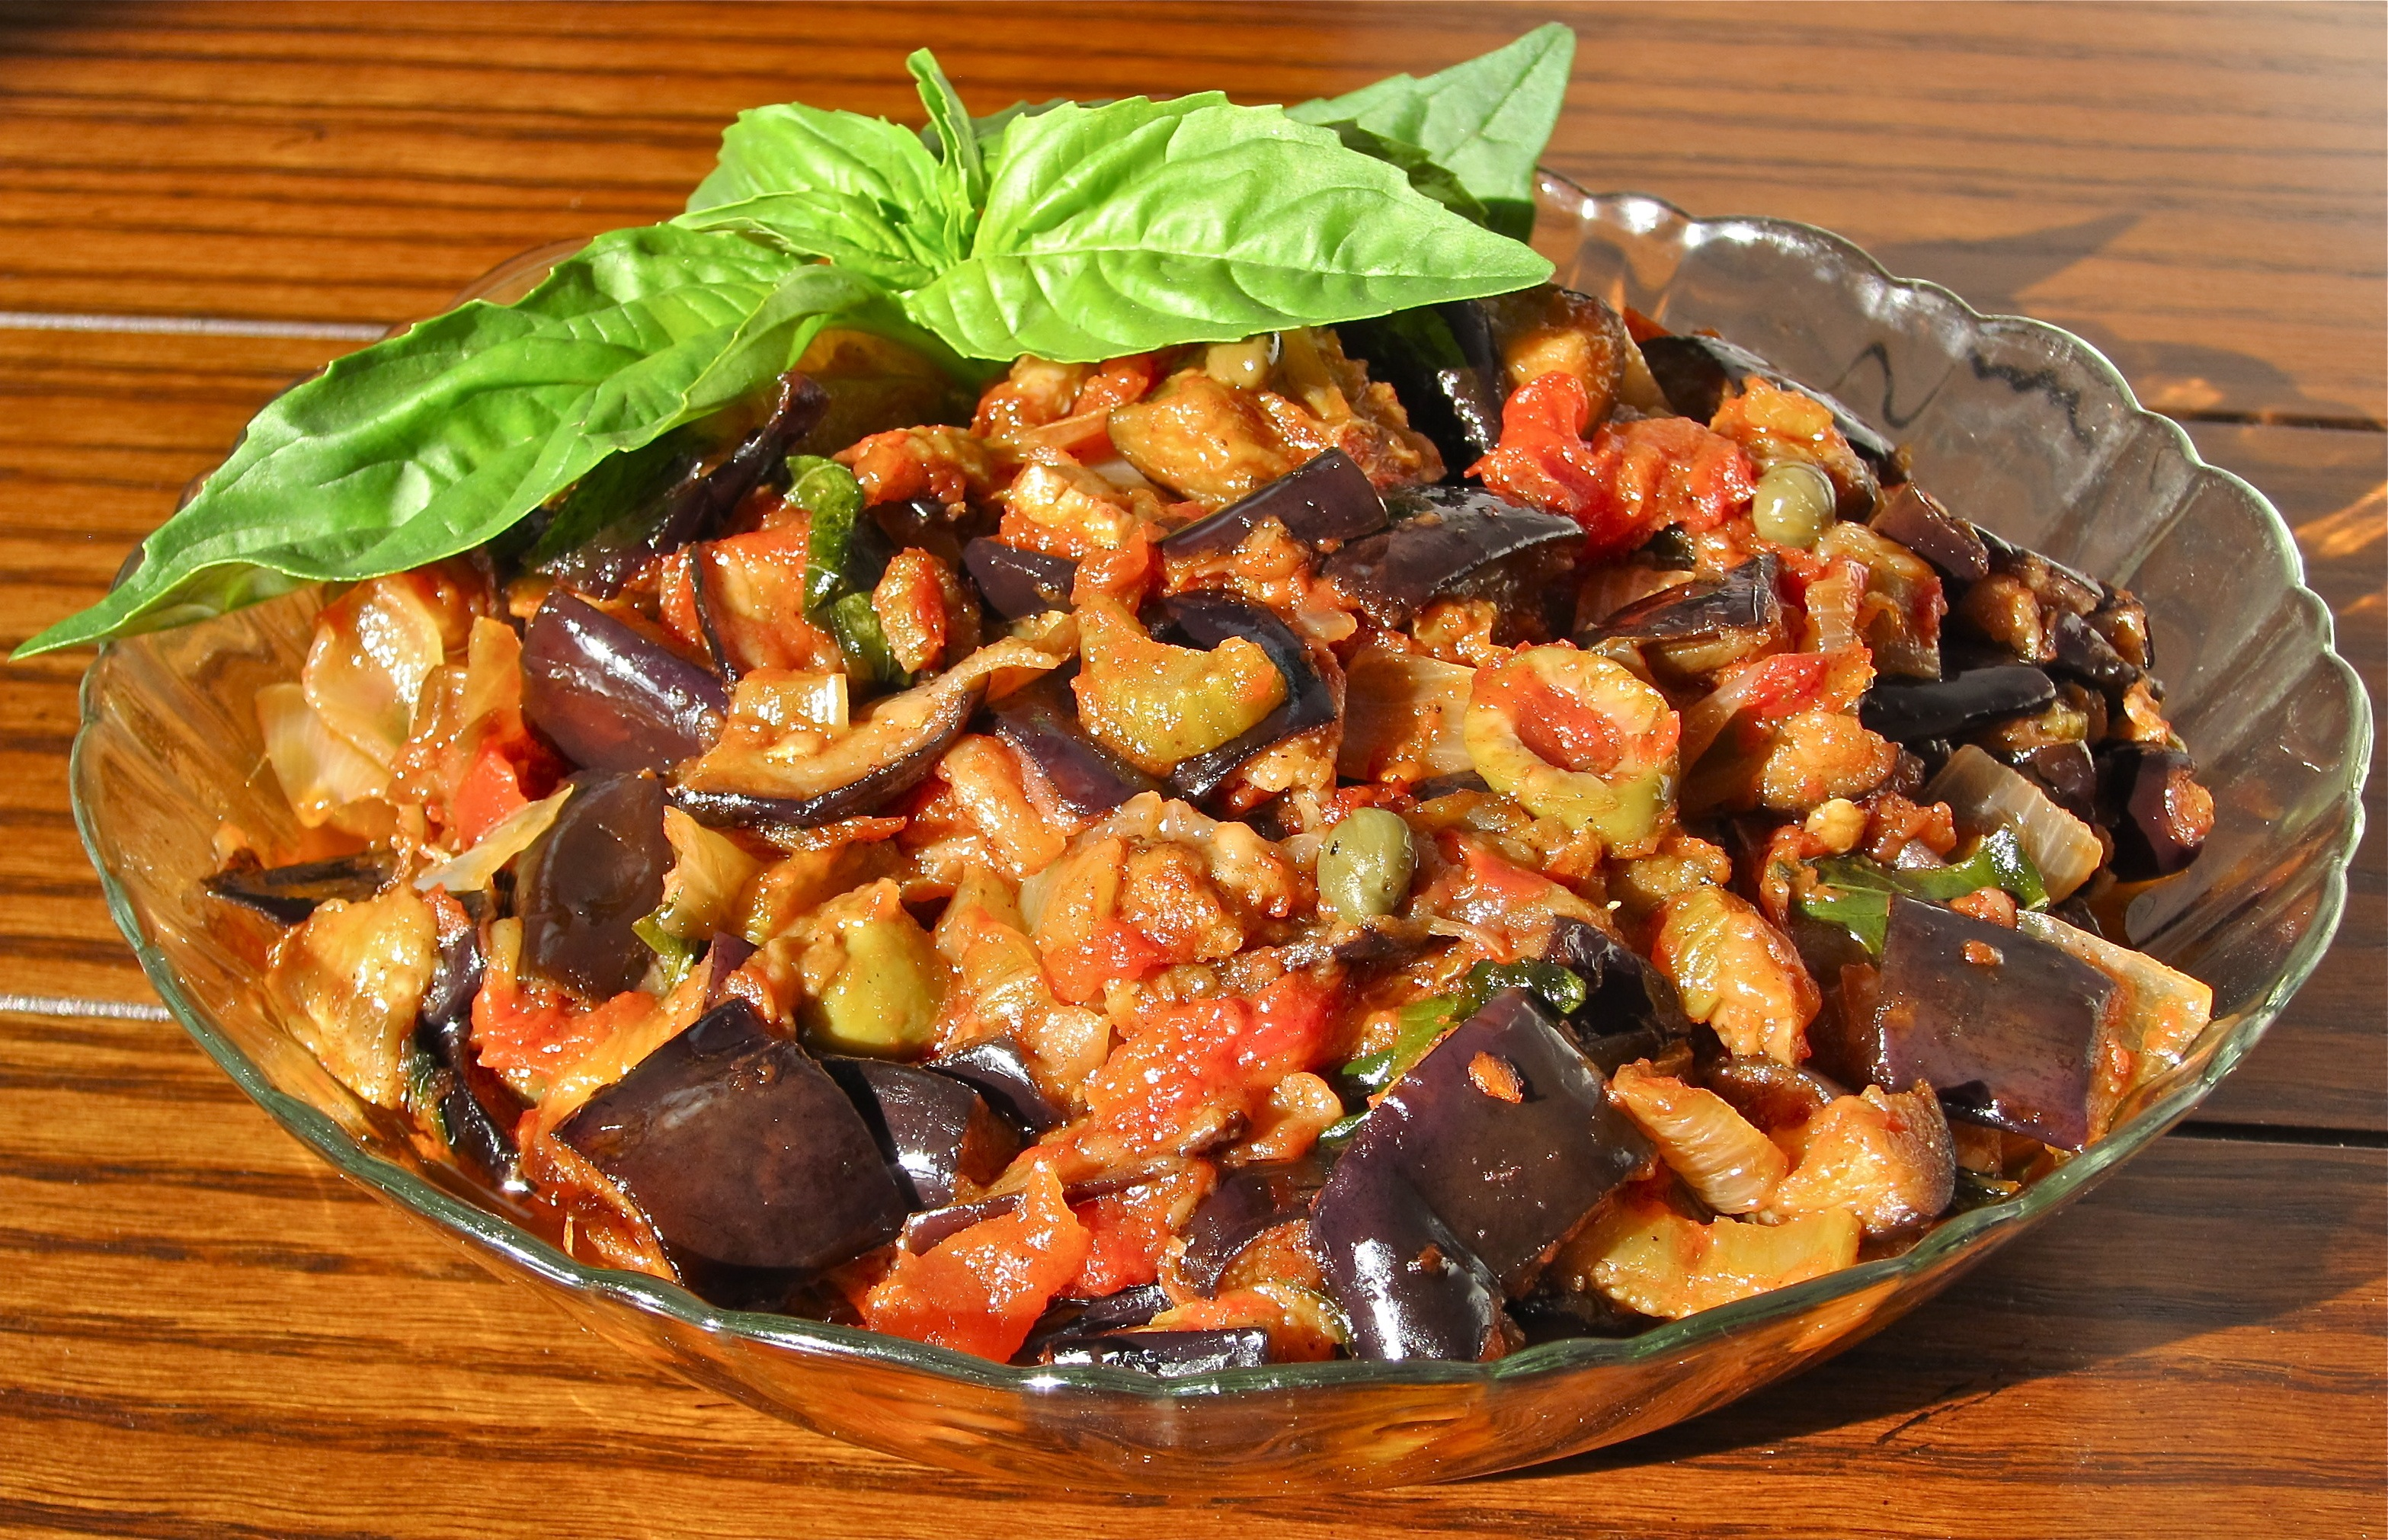 Helpfully, Garten shares her own recipe for the dish on her website, and it's incredibly simple: All you have to do is toss your vegetables—eggplant, bell peppers, onion, and garlic—in olive.